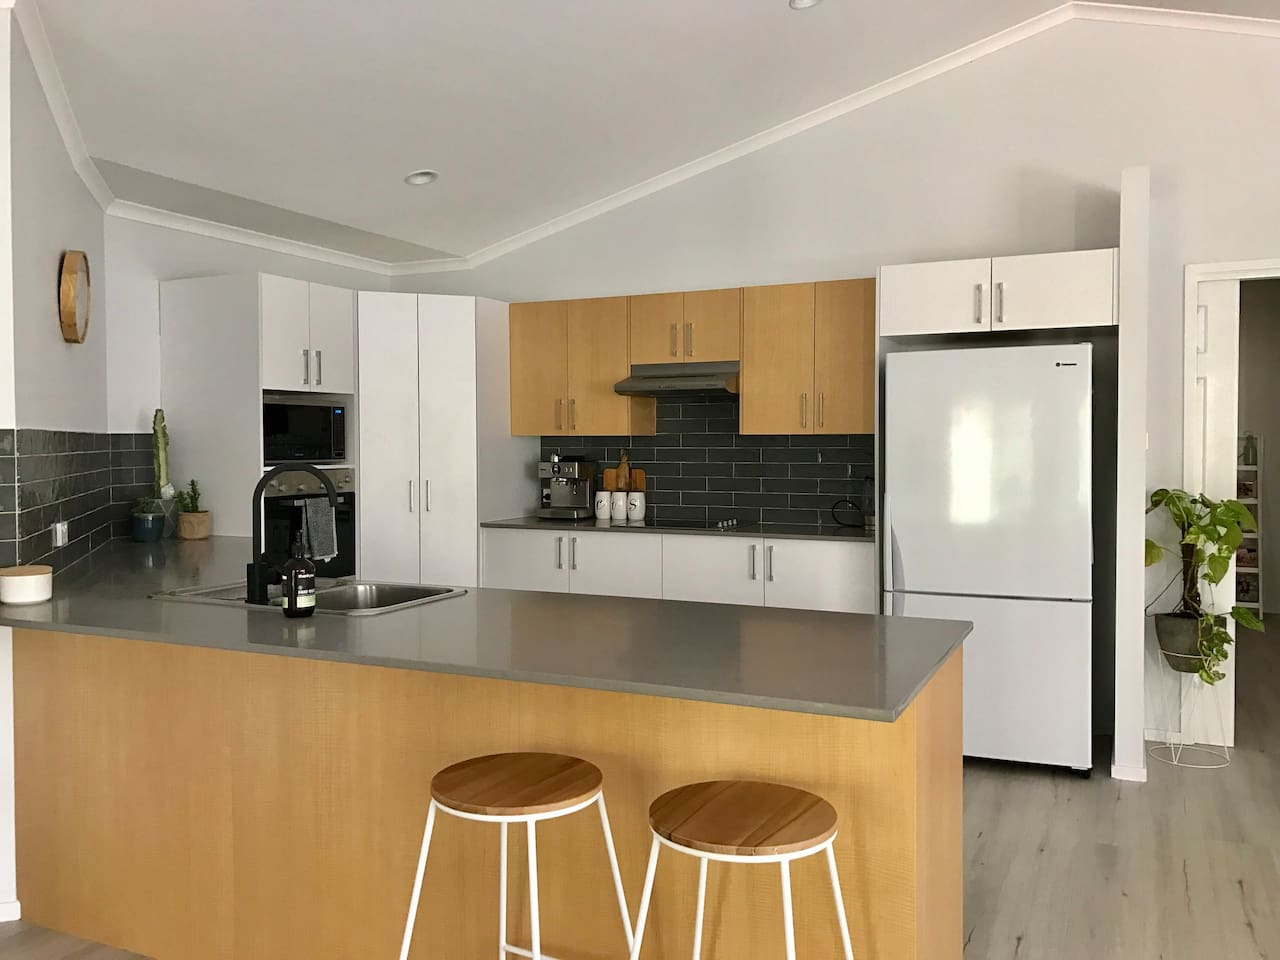 Spaceous, beautiful, freshly renovated kitchen